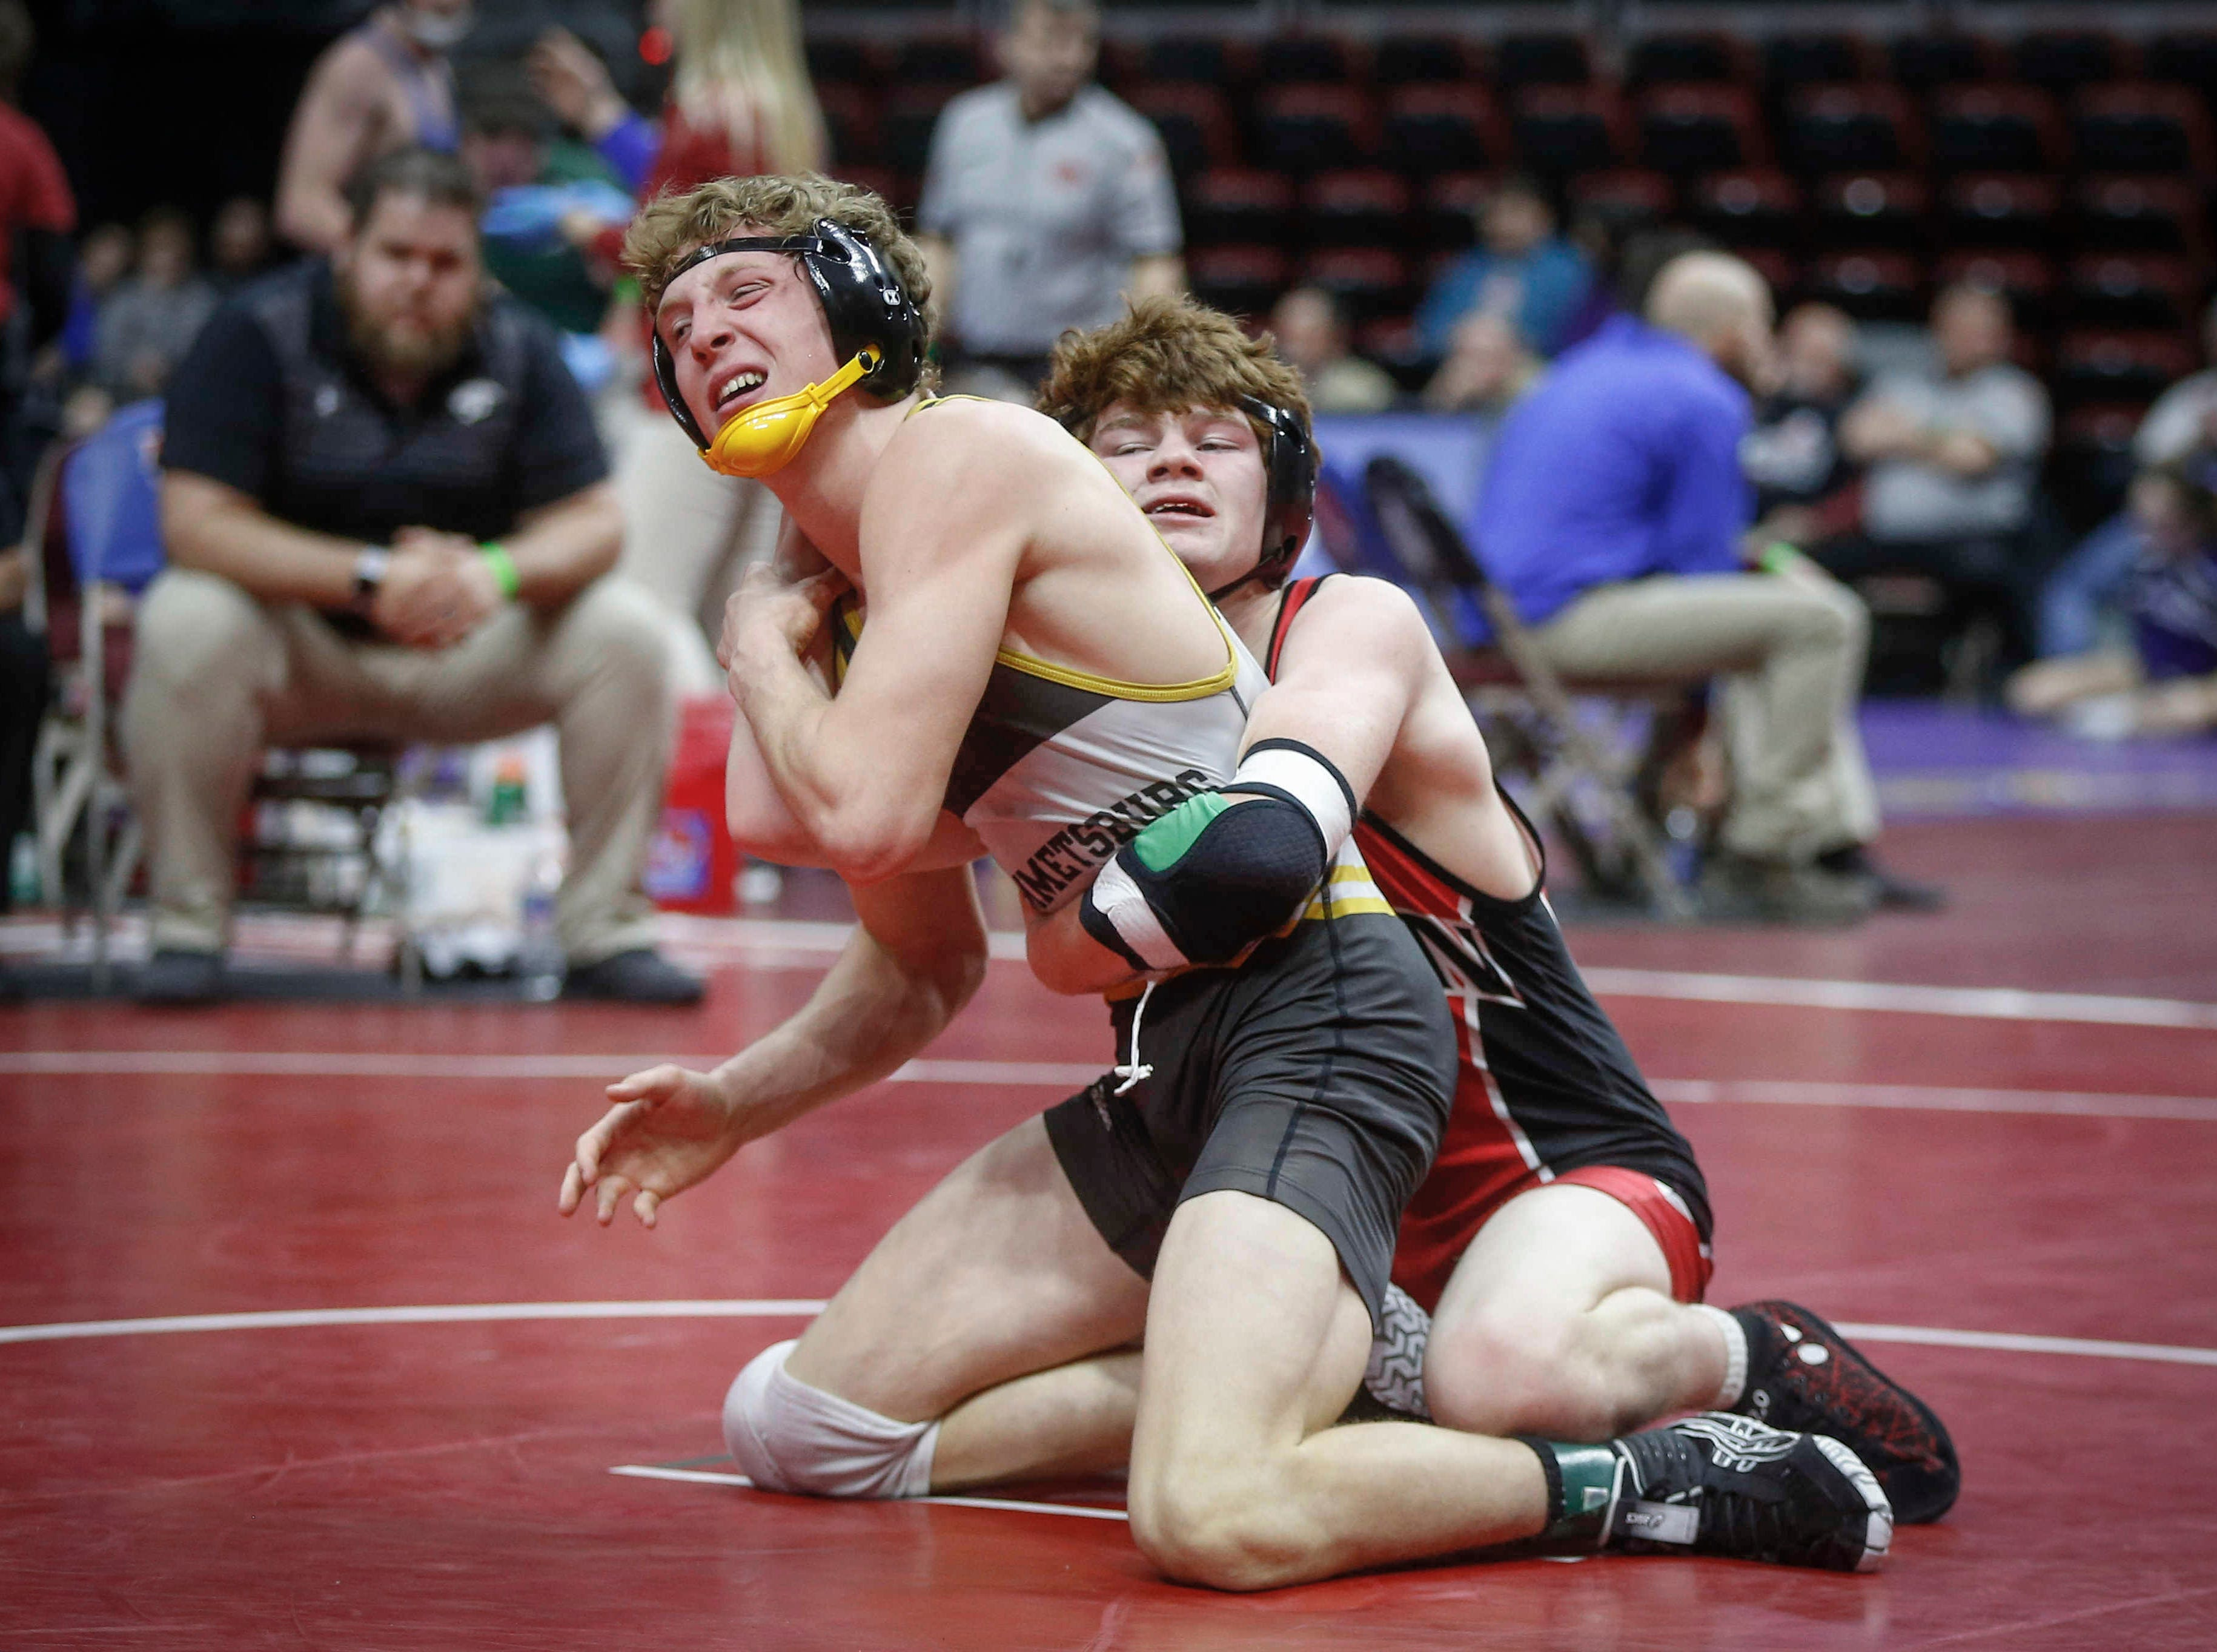 Pekin sophomore Cael Baker, right, fights to keep Emmetsburg senior Spencer Griffin on the mat in their match at 145 pounds during the opening round of Class 1A matches during the Iowa high school state wrestling tournament at Wells Fargo Arena on Thursday, Feb. 14, 2019, in Des Moines.